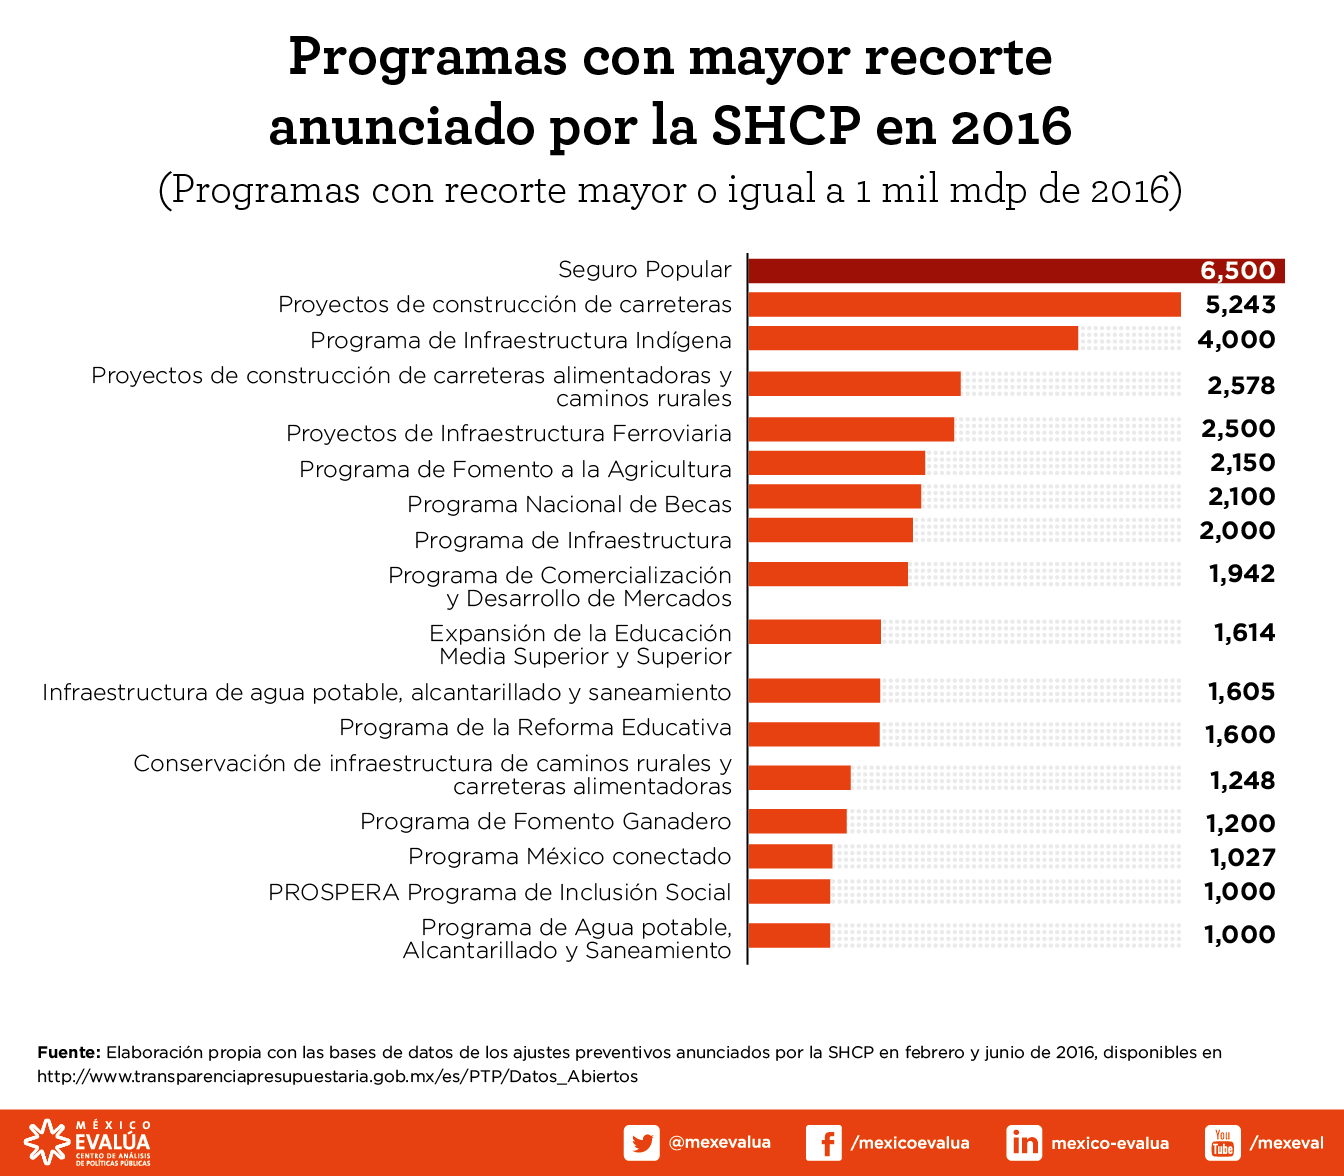 programas-con-mayor-recorte-2016